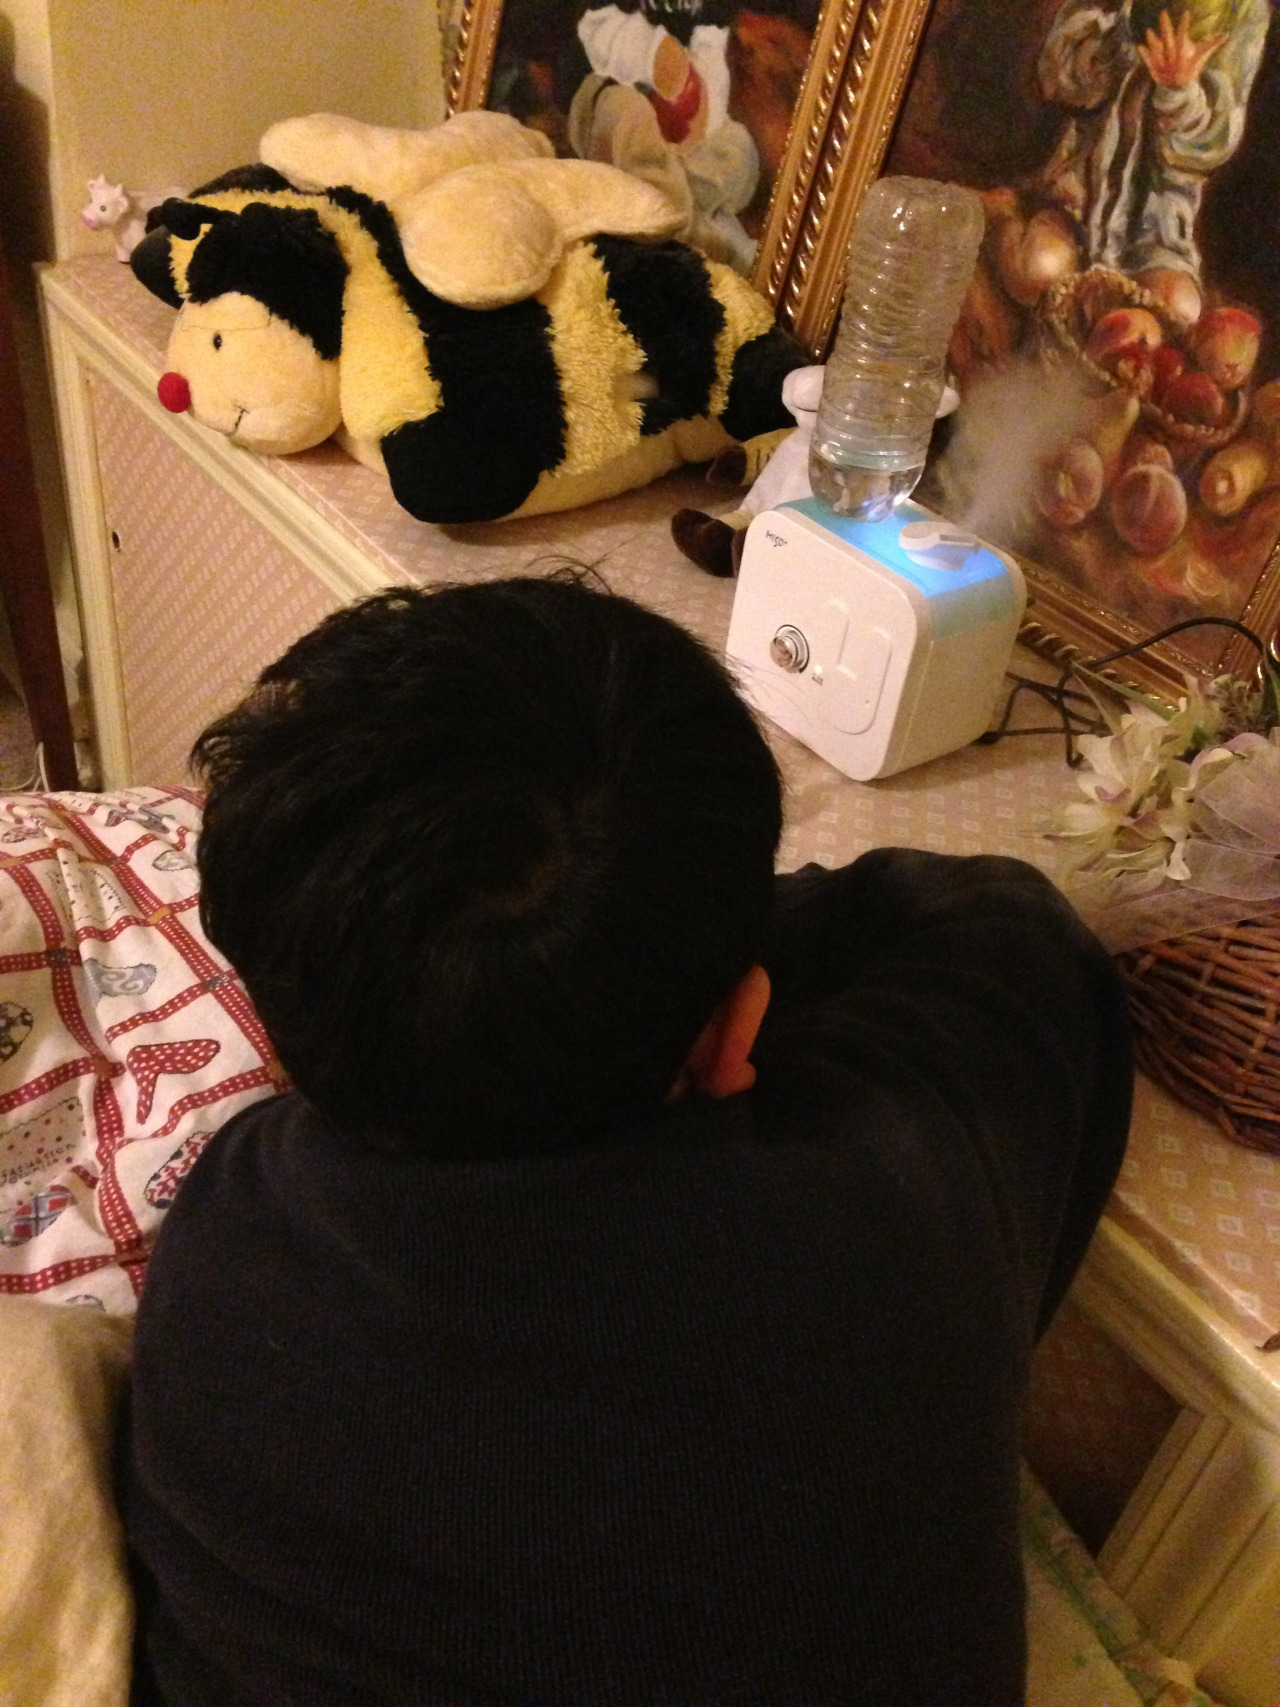 My cute brother. His cute Pillowpet. His cute humidifier. My cute painting of my cute brother?